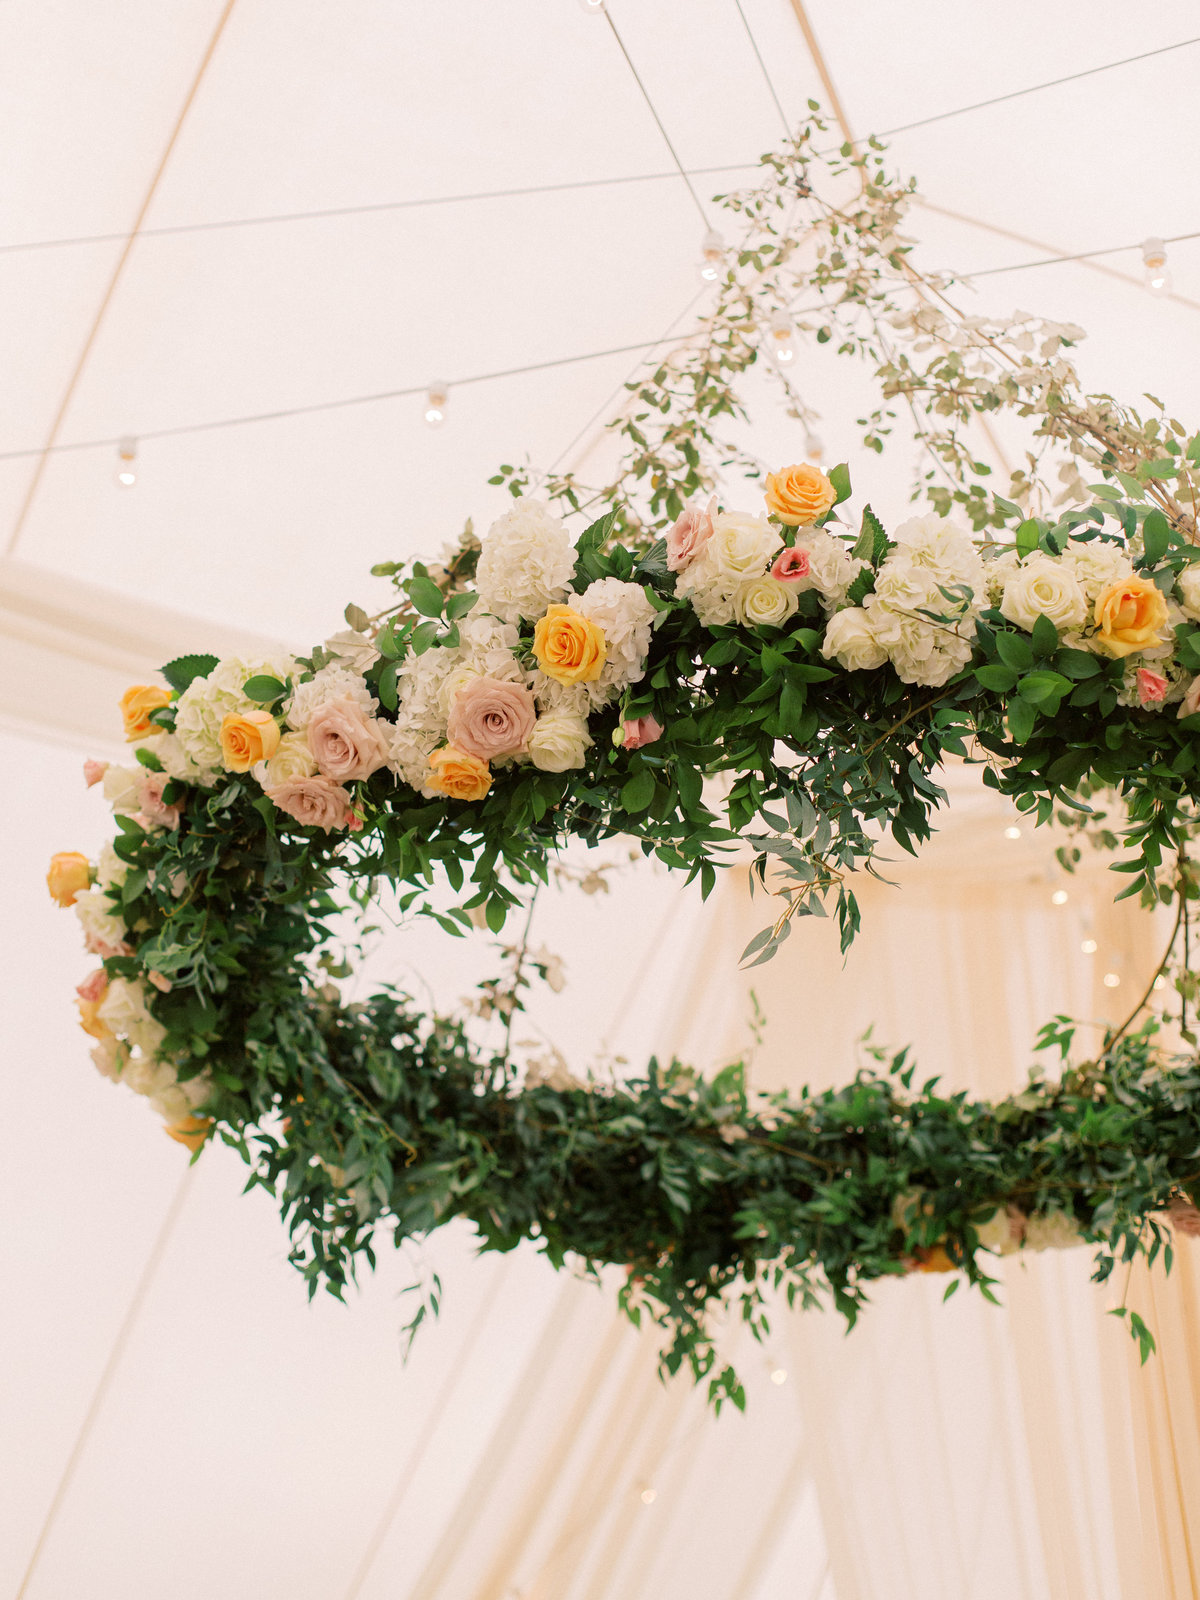 2019-06-08Carrie&MikeWedding-108